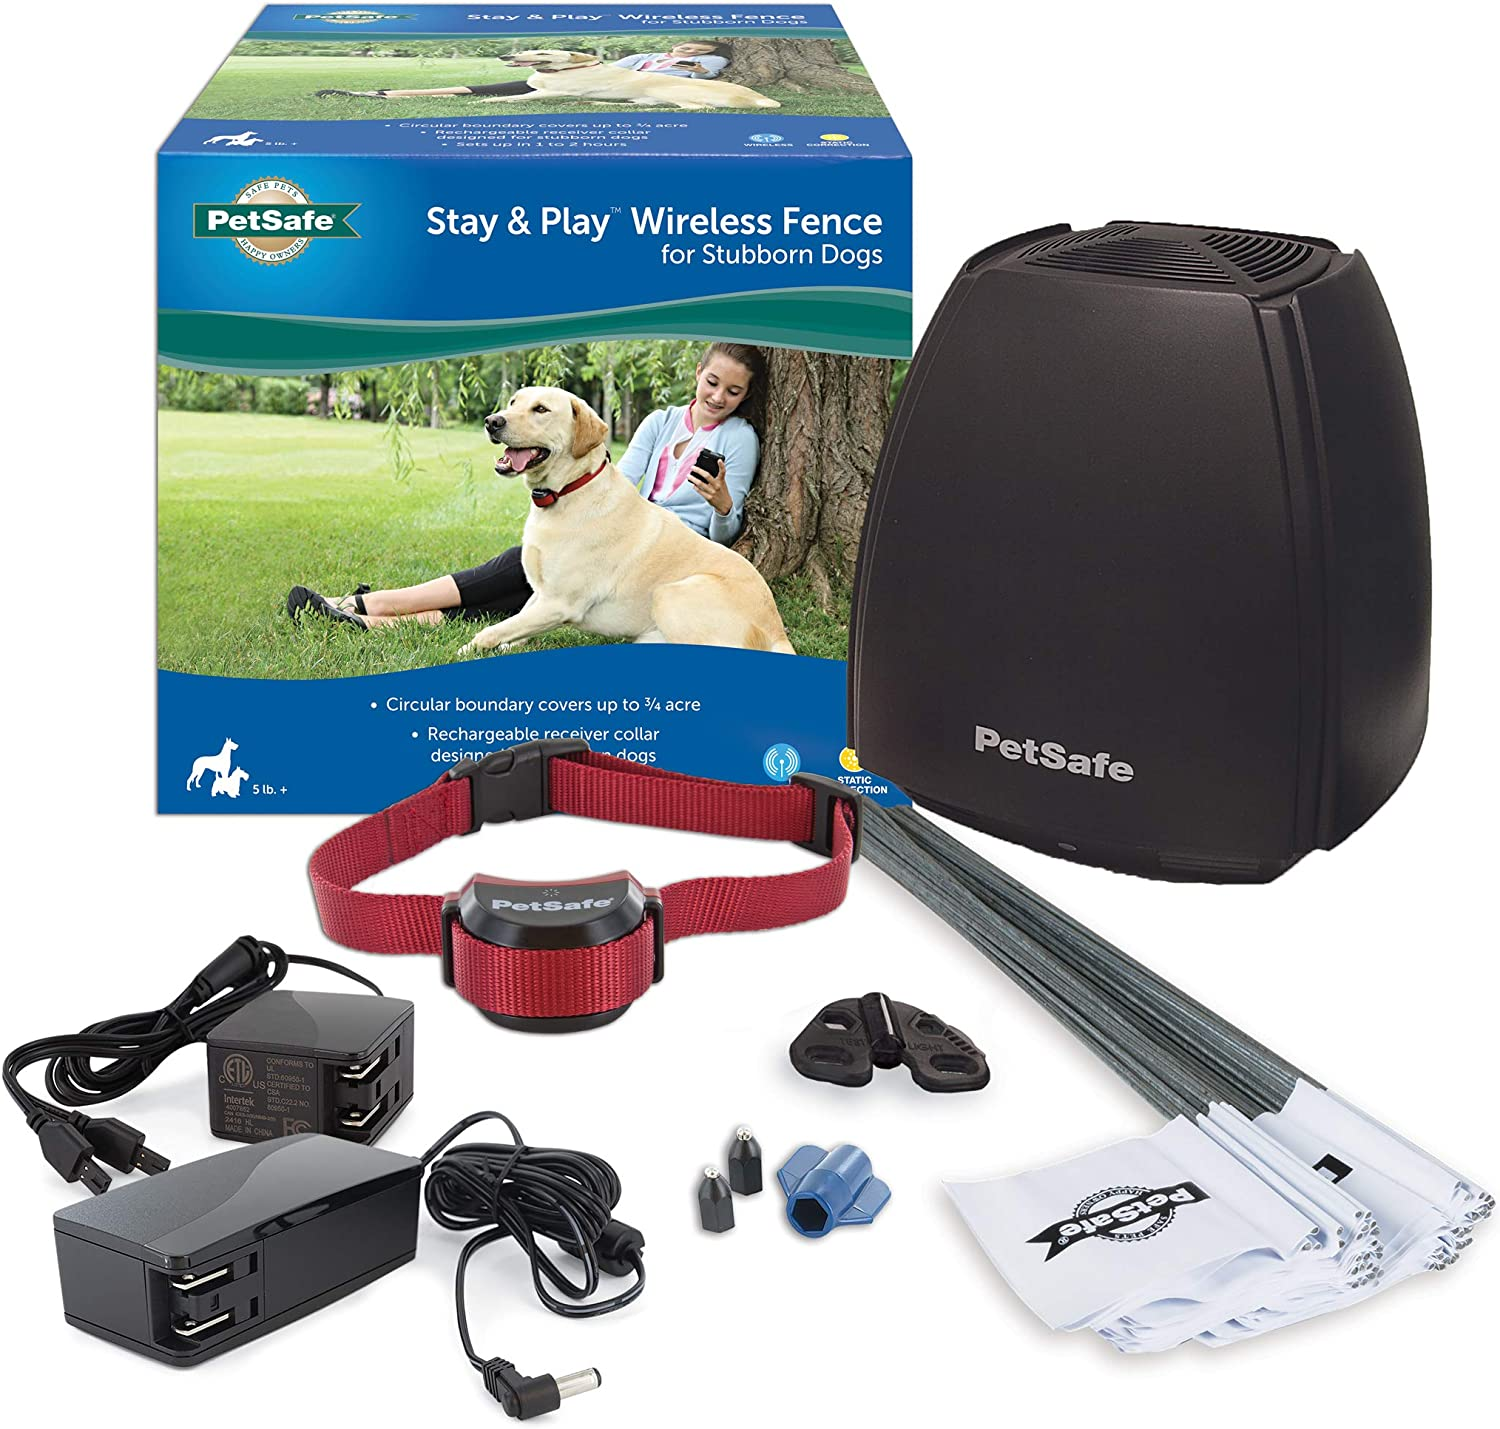 Petsafe 1 2 Acre Wireless Pet Containment System Pif 300 The Home Depot